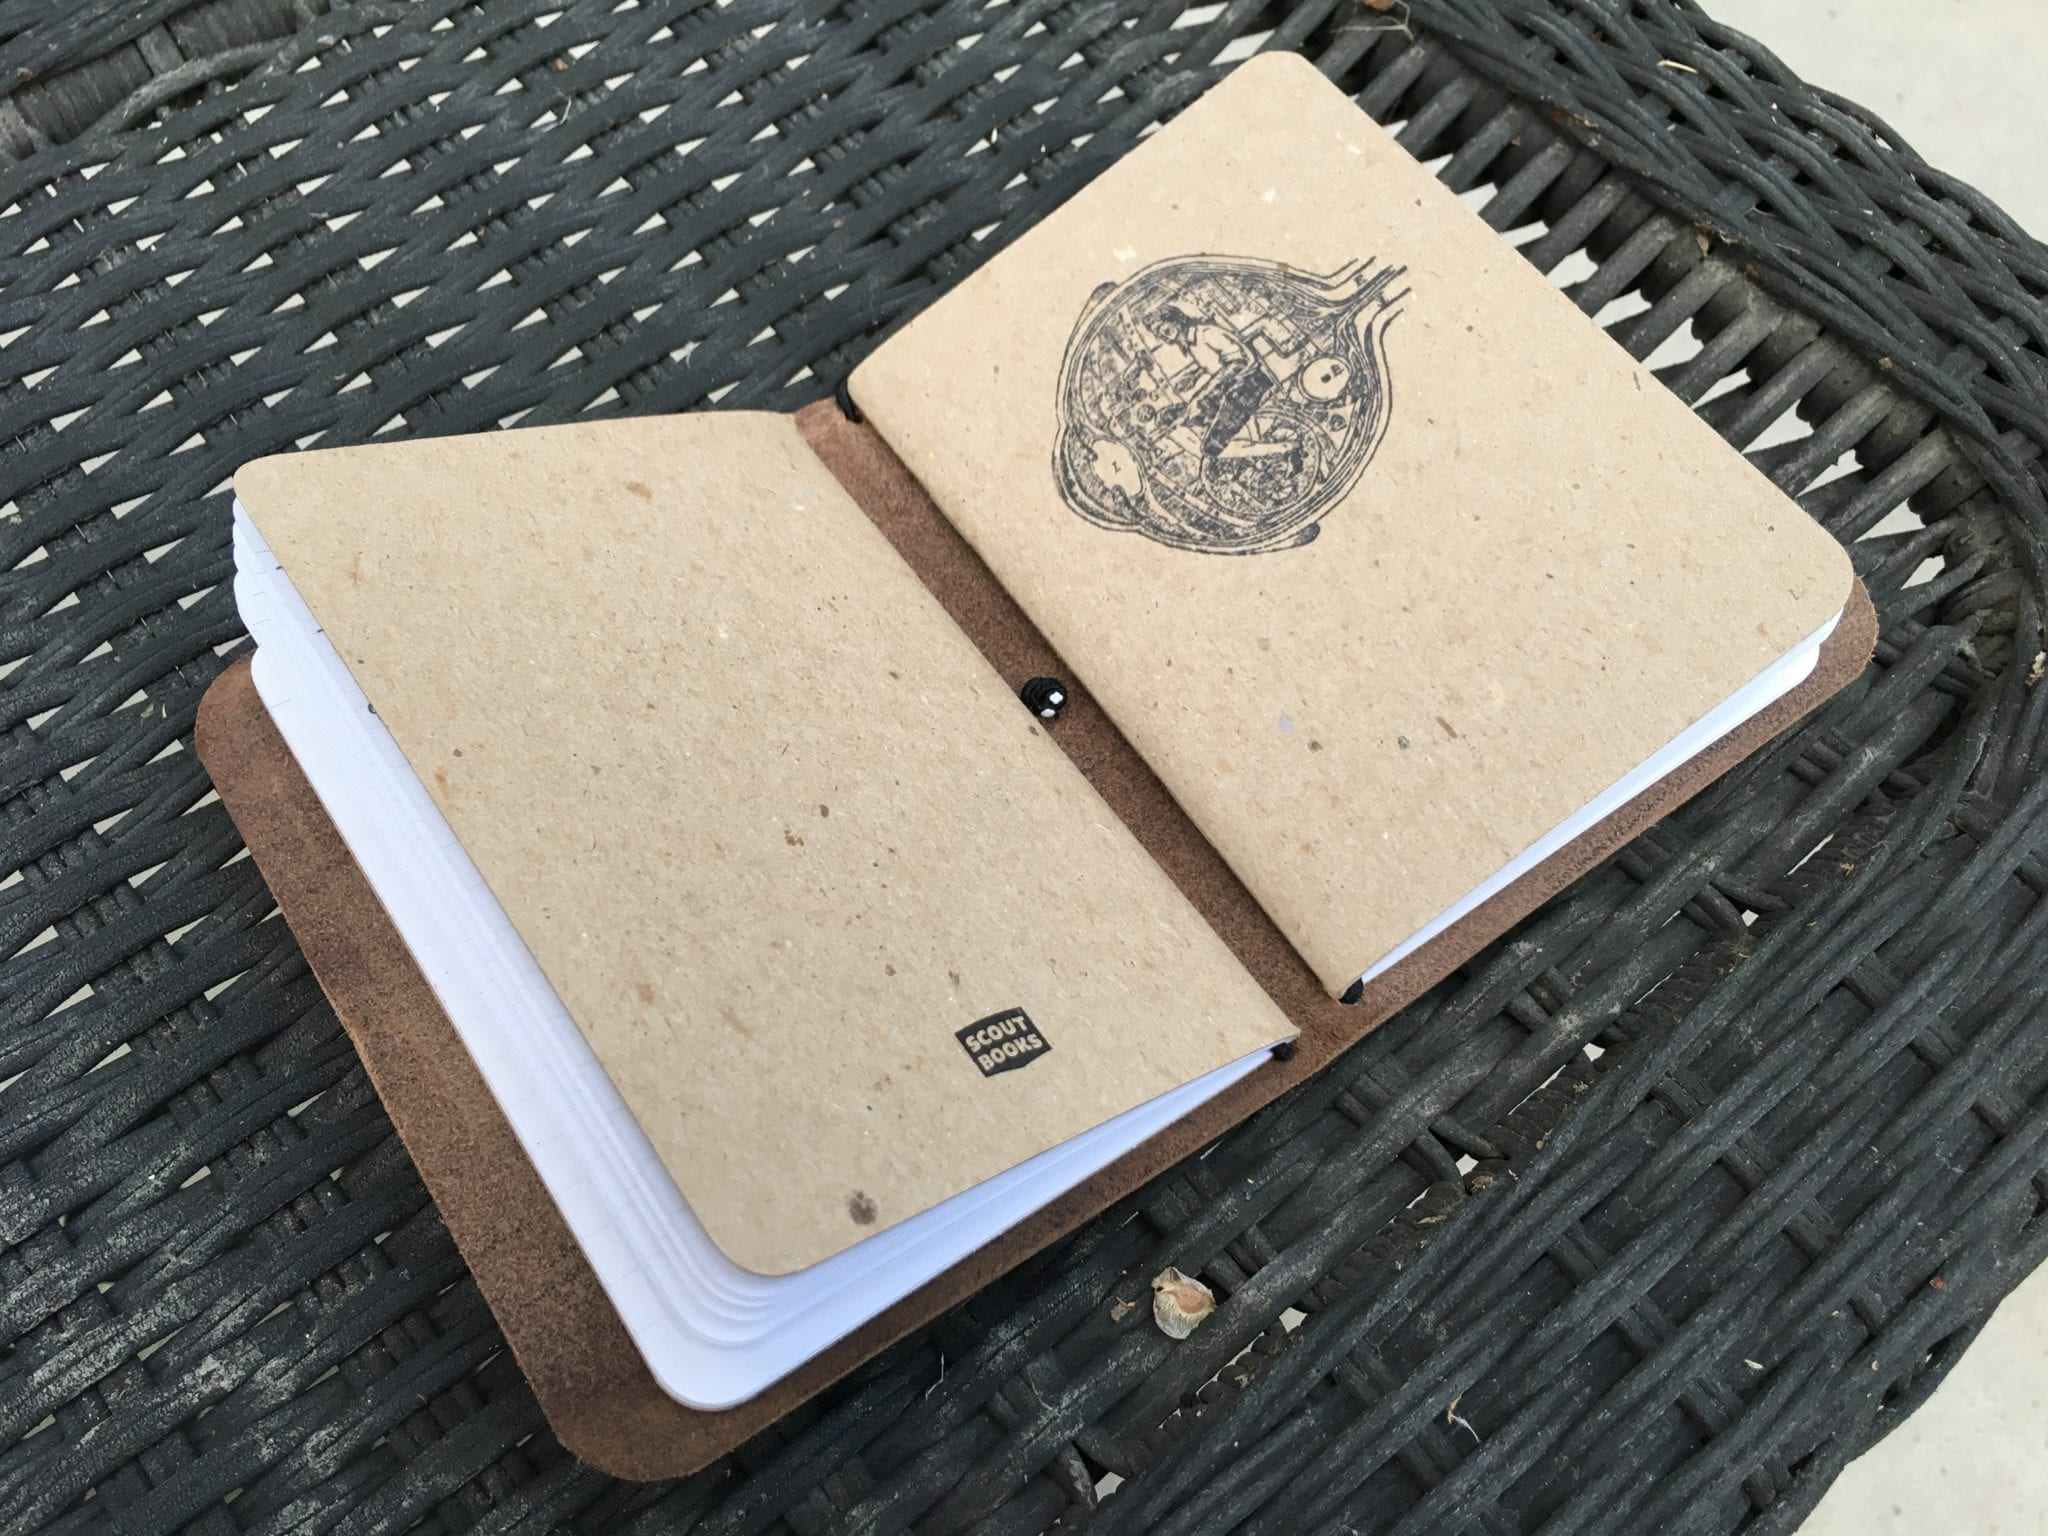 e3-supply-co-passport-notebook-tactical-keychains-review-4